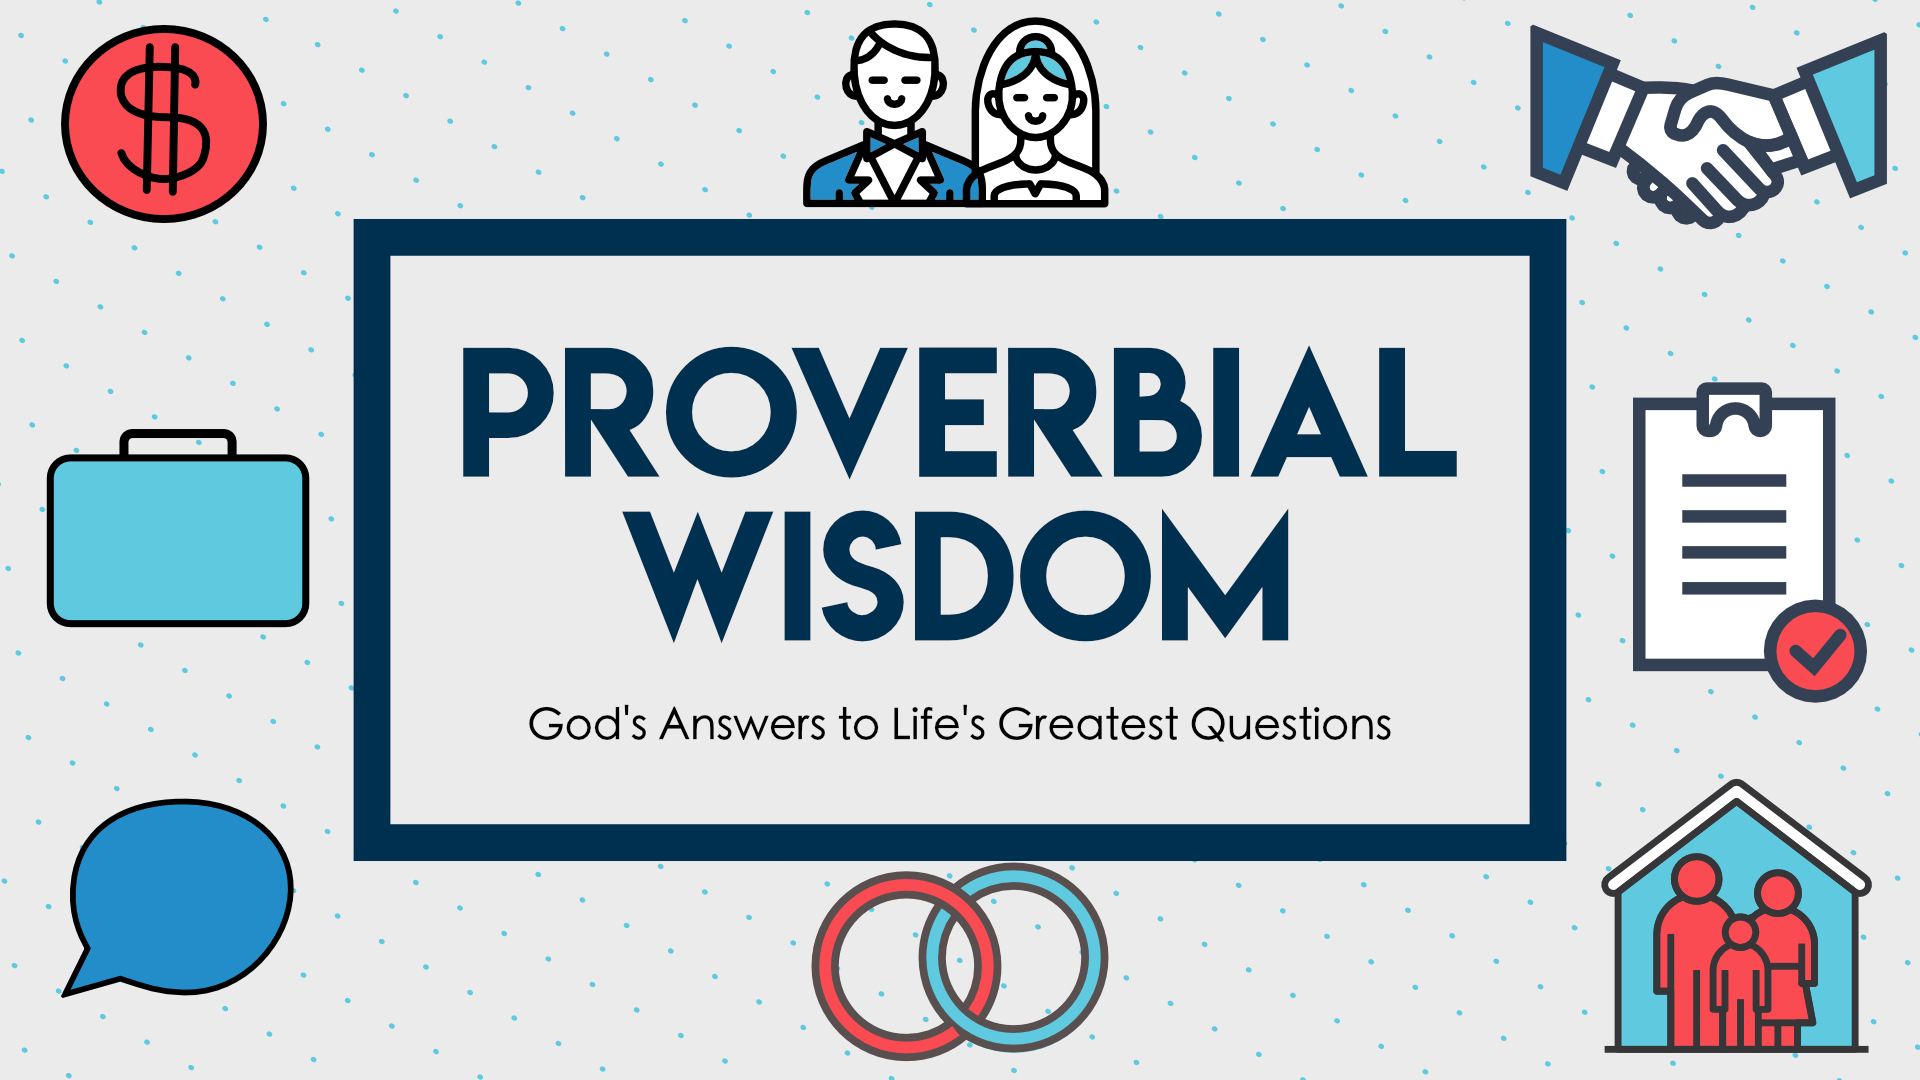 Proverbial Wisdom • Apr. 23 - June 18, 2017